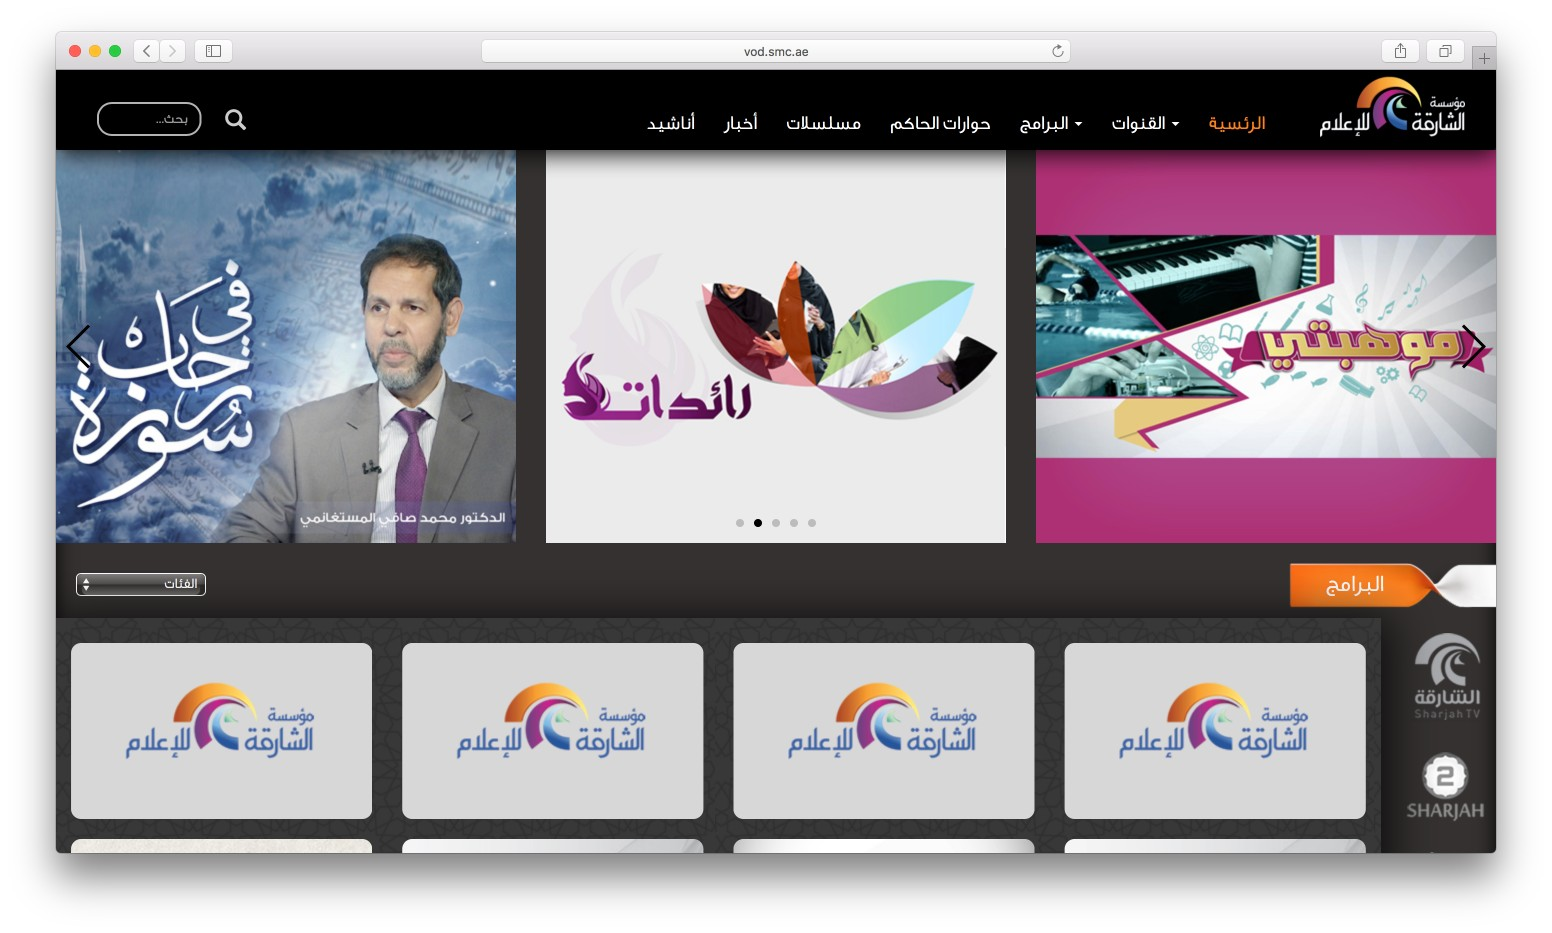 Sharjah Media Group VOD